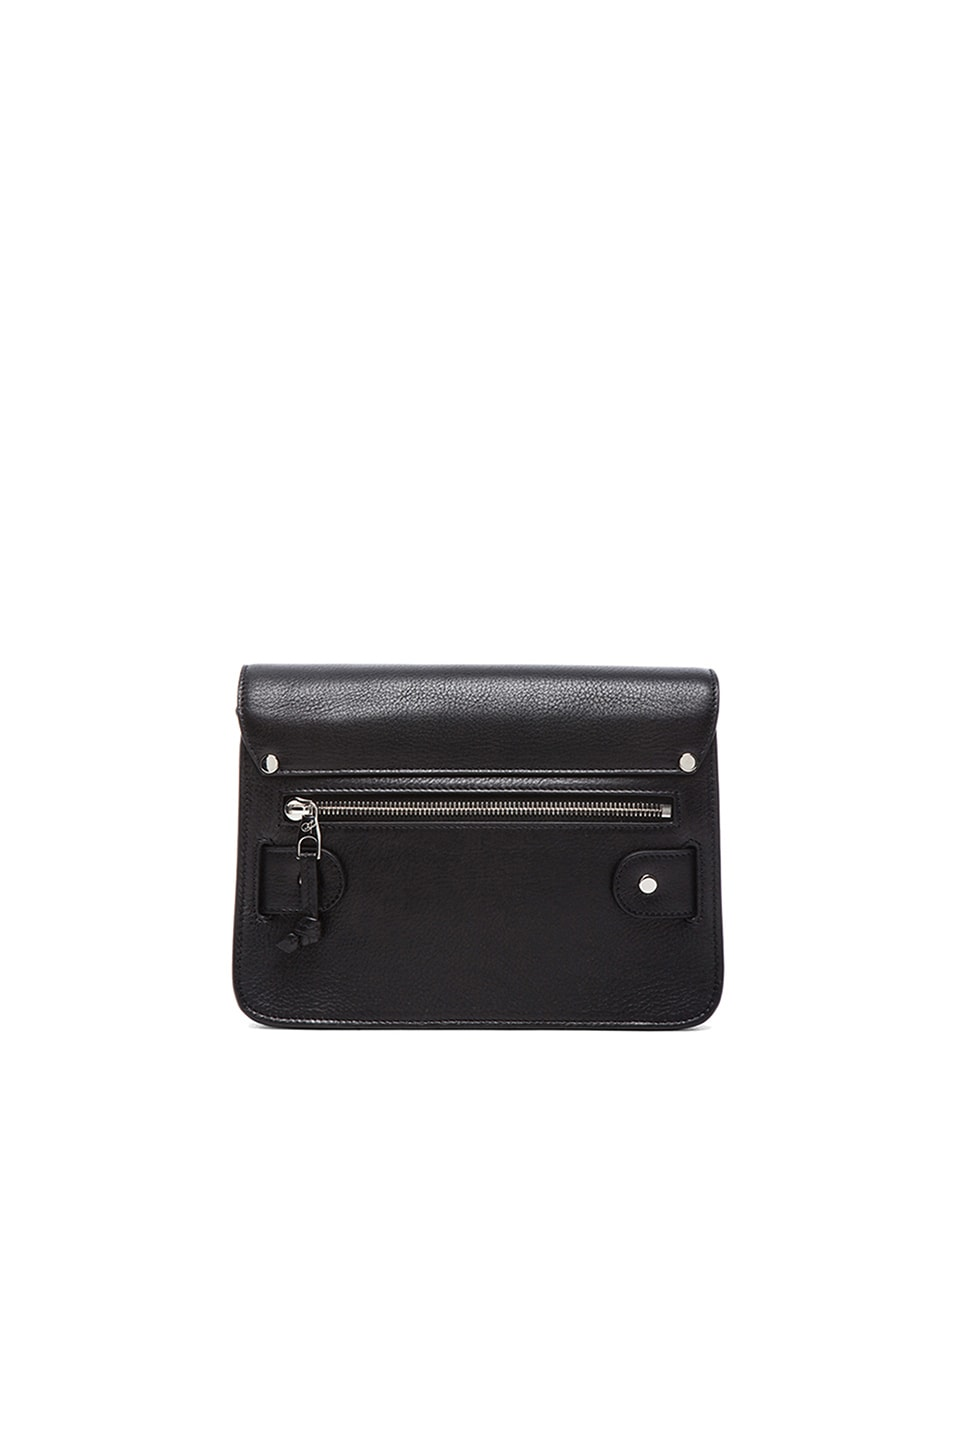 Image 2 of Proenza Schouler Mini PS11 Classic in Black